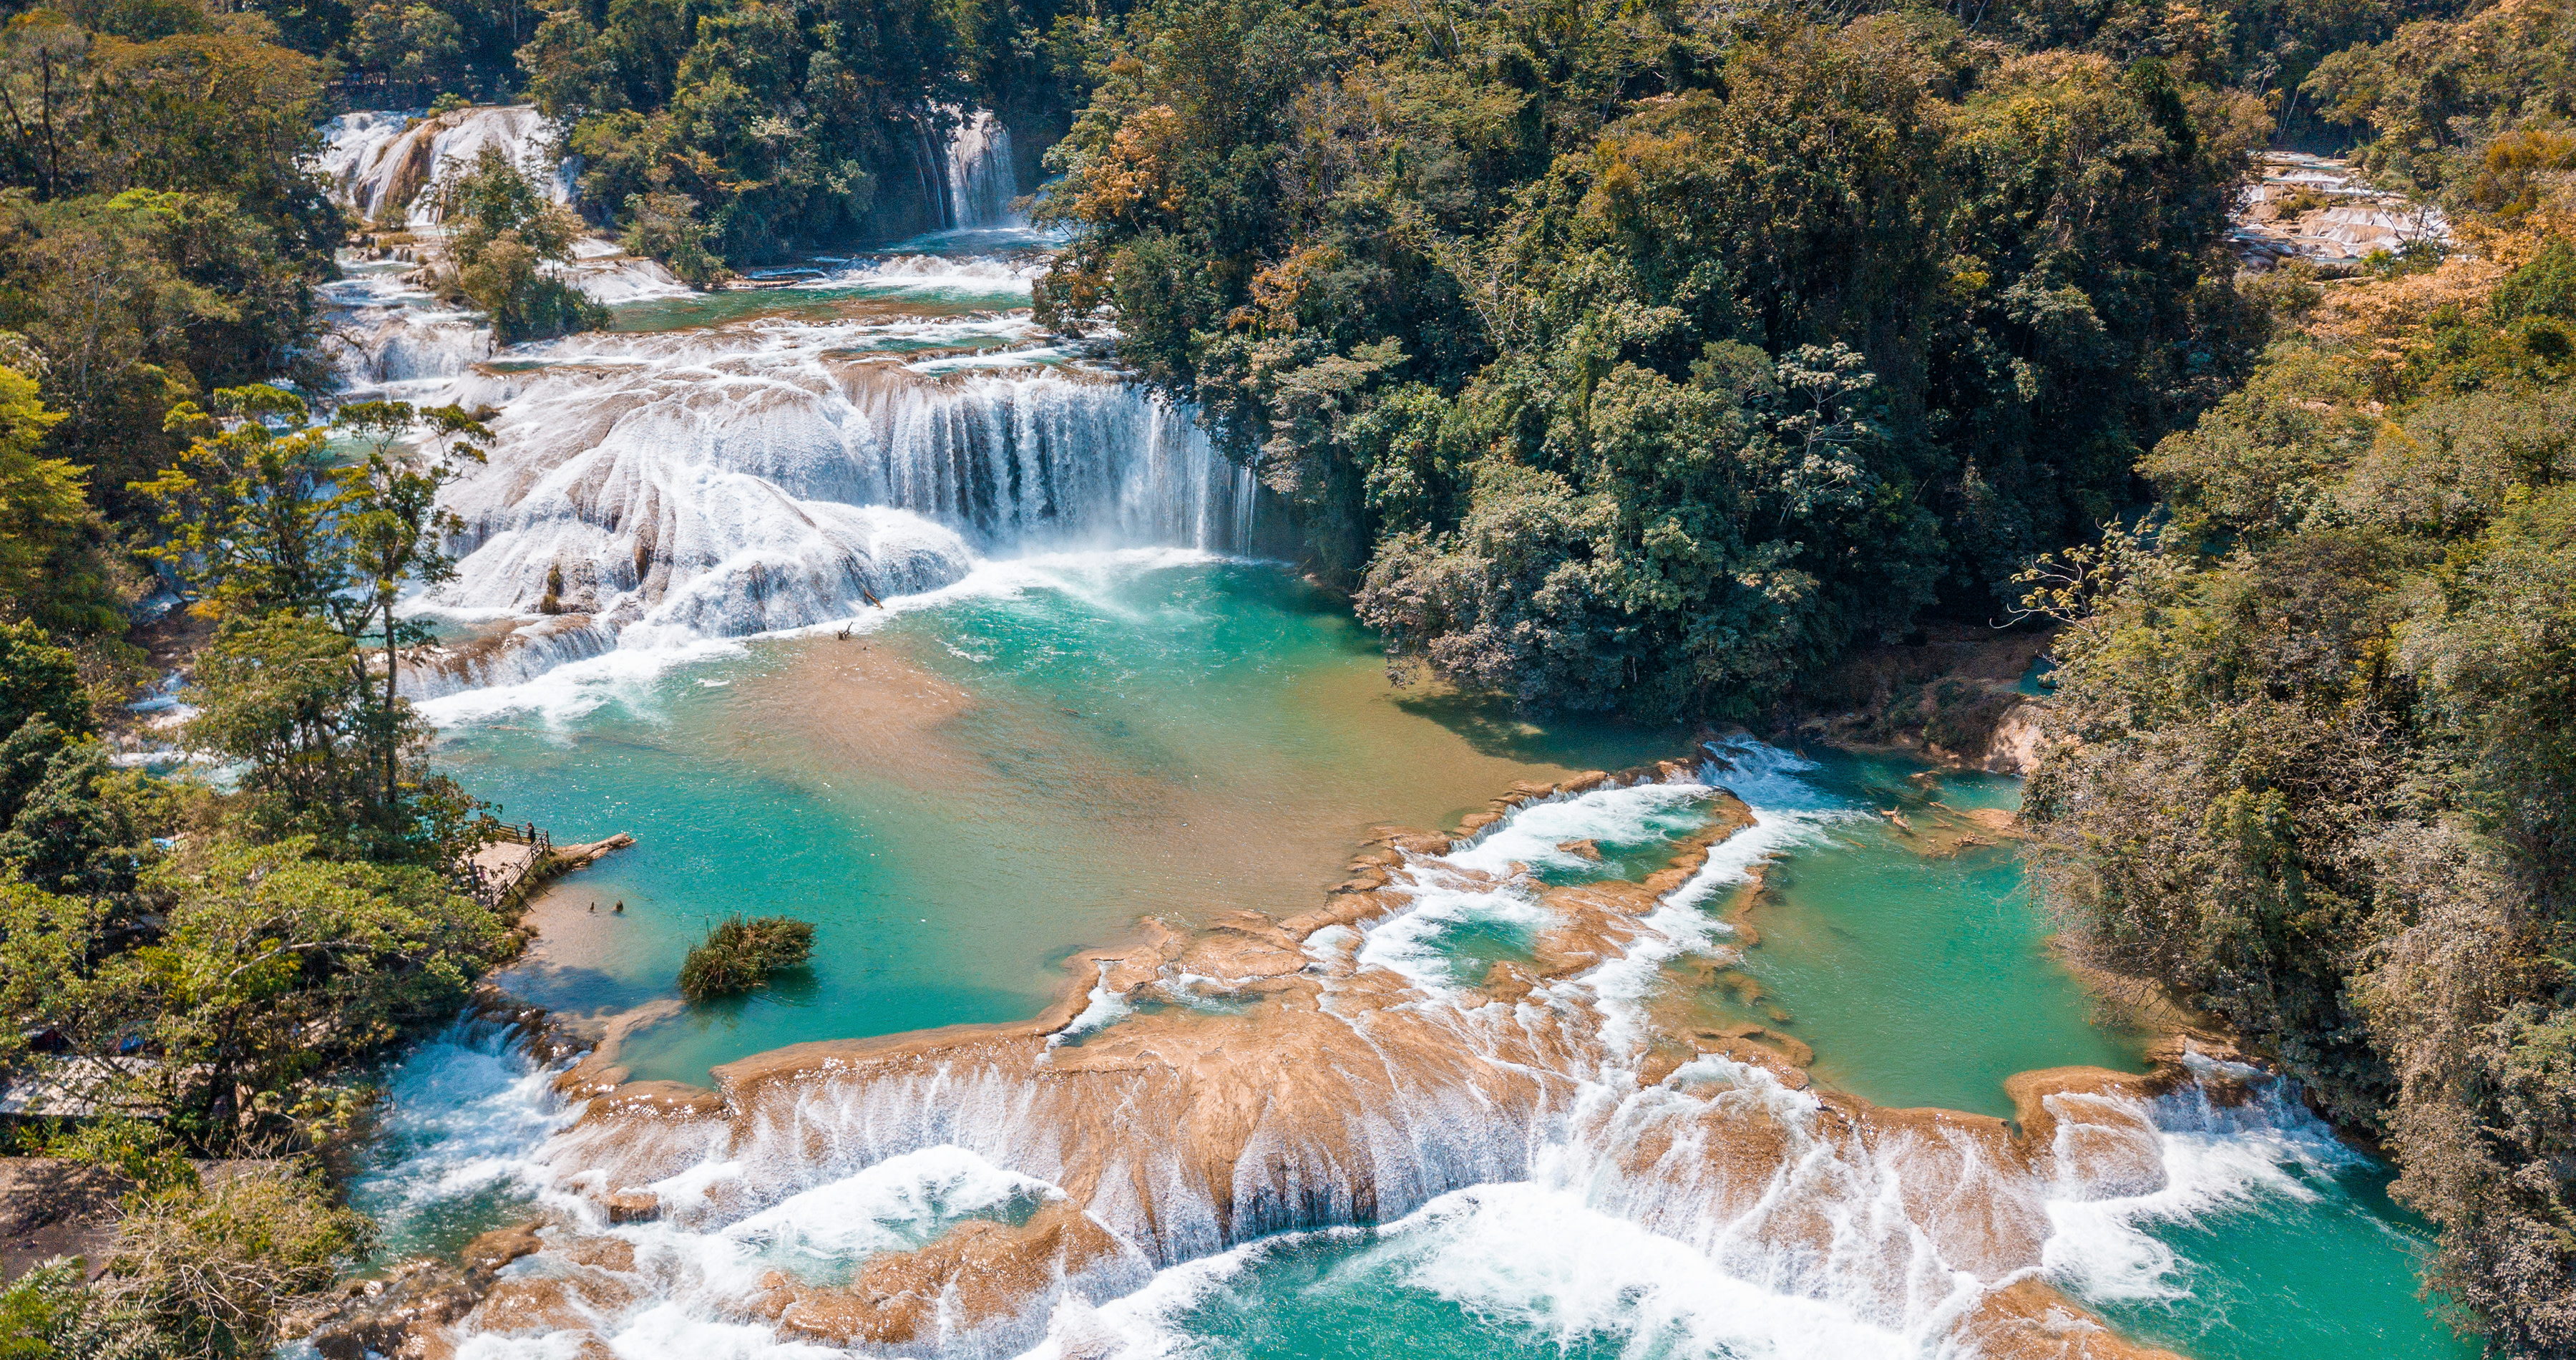 is it safe to travel to Mexico? - Aerial view of the majestic turquoise waterfalls at Agua Azul in Chiapas, Mexico, Central America